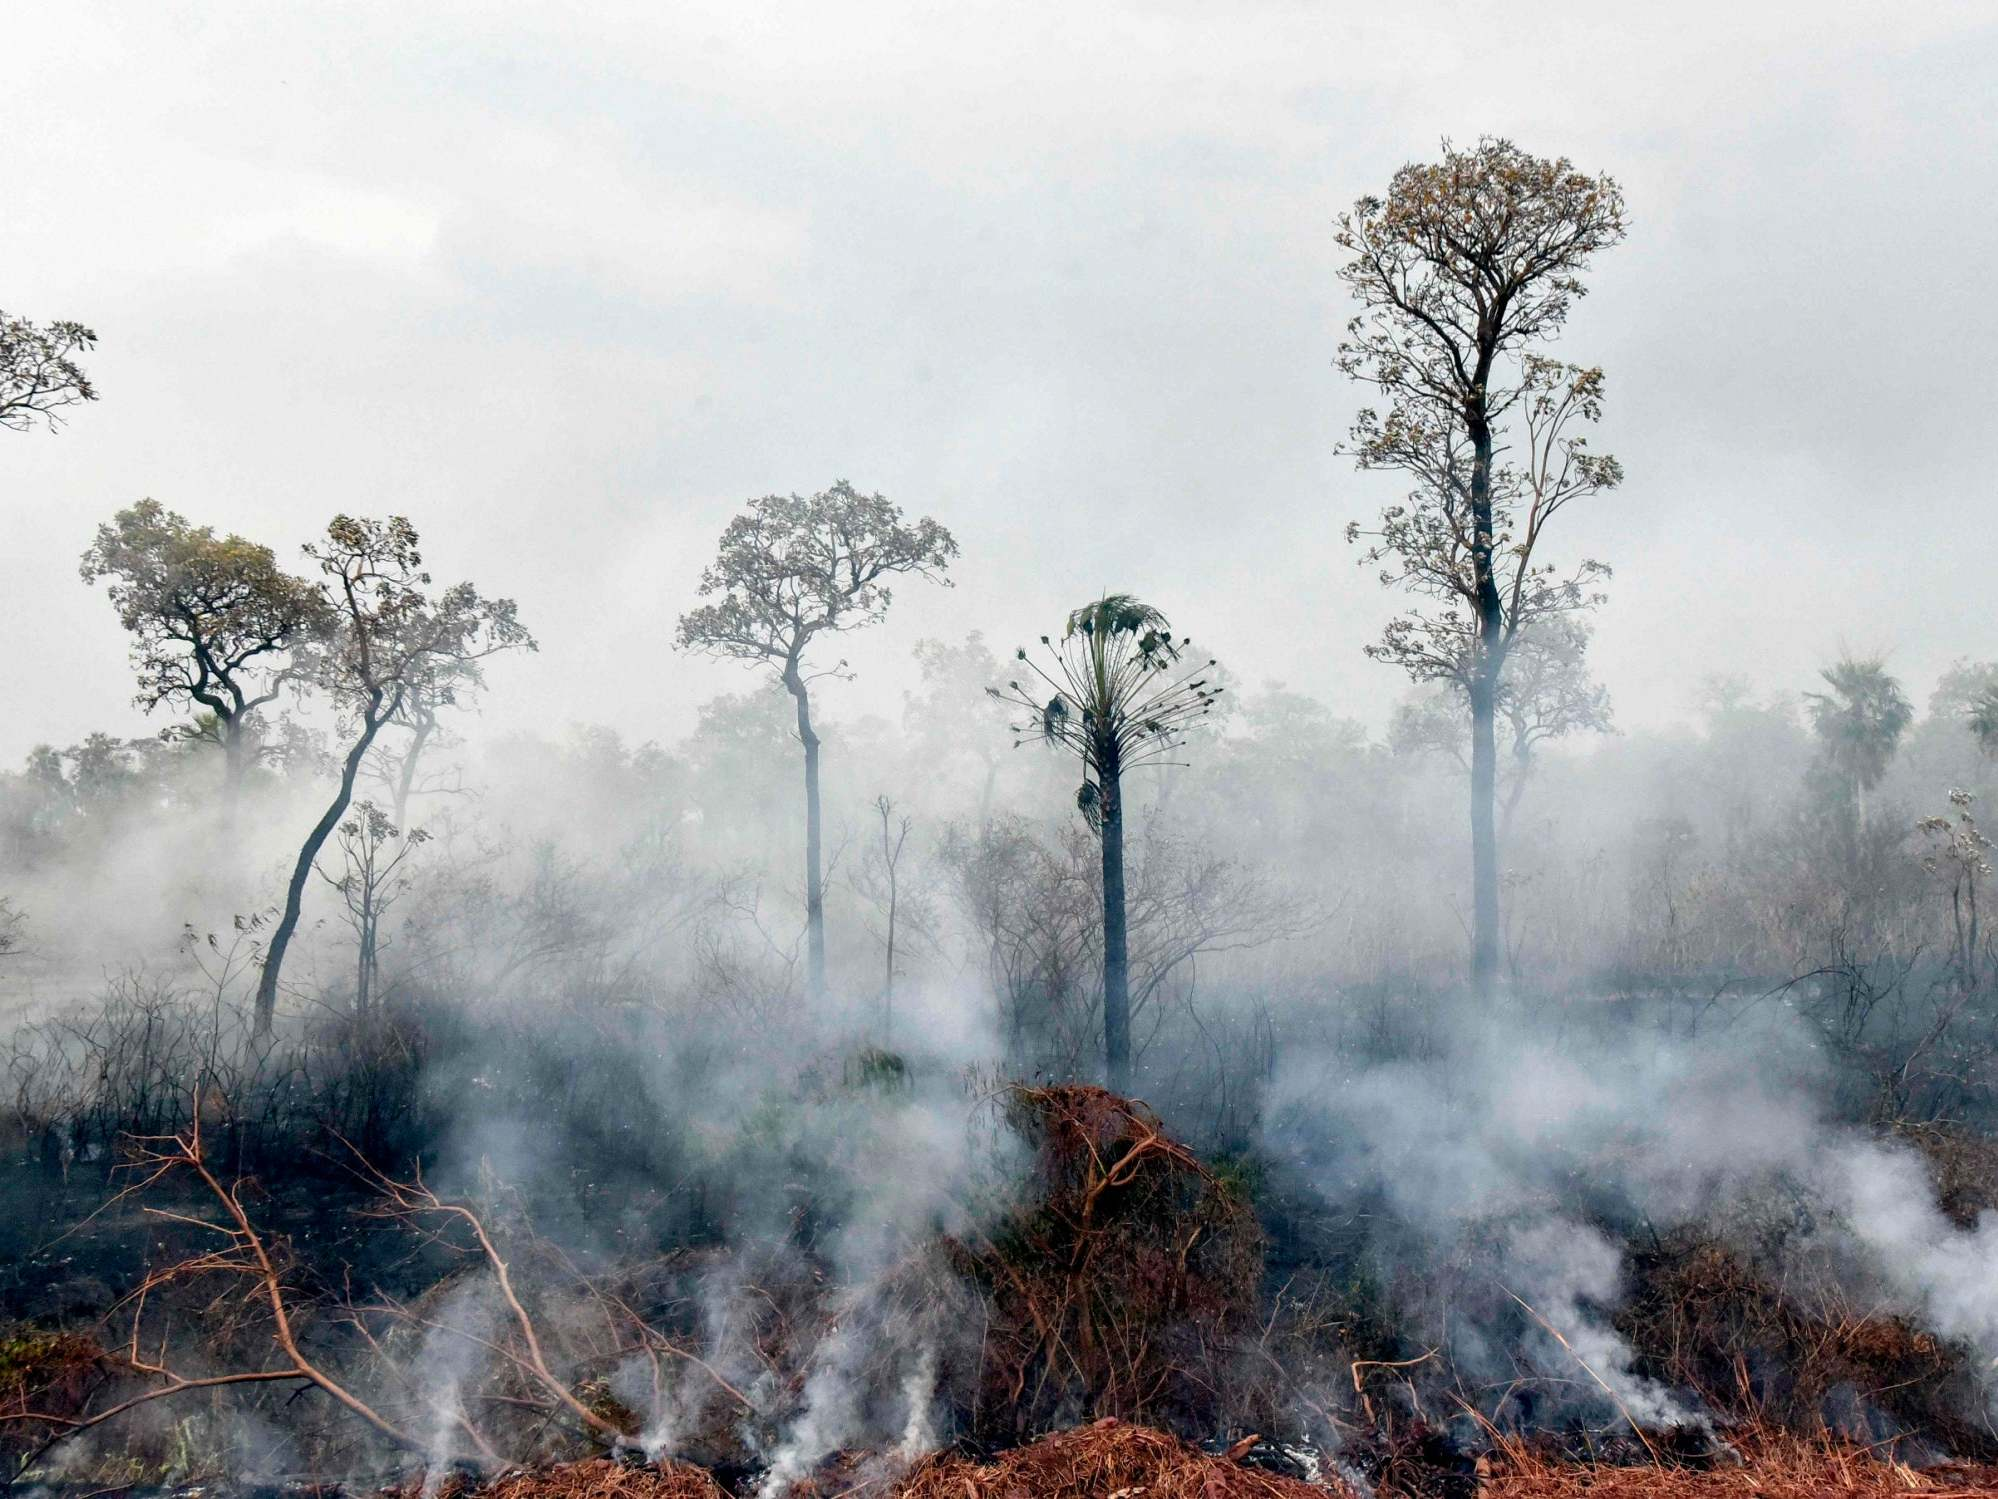 Illegal cattle ranching is destroying the Amazon rainforest – and putting our planet at risk